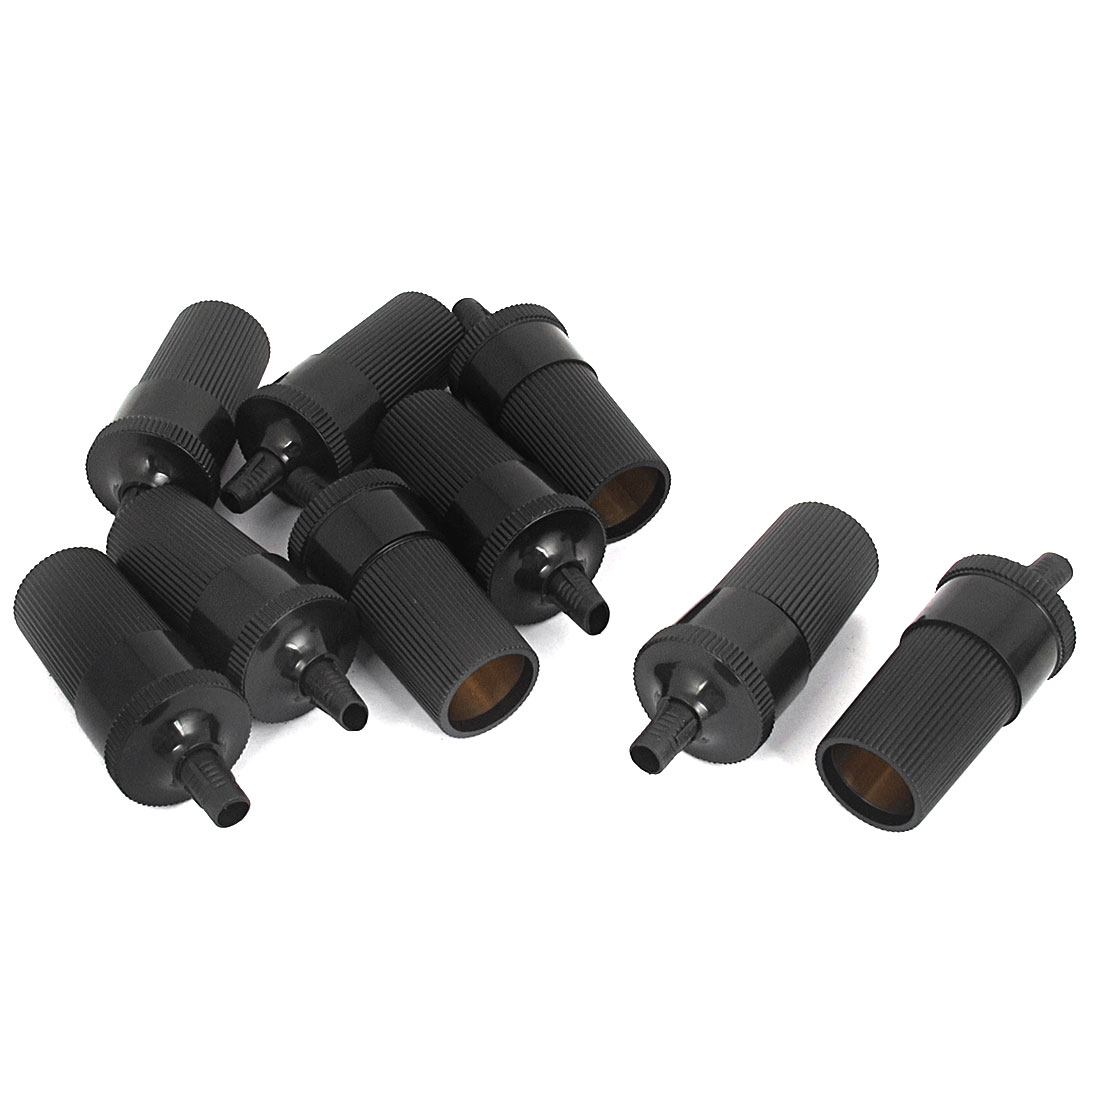 Auto Car Plastic Power Charger Cigar Cigarette Lighter Plug Socket Cable Adapter Black 9pcs